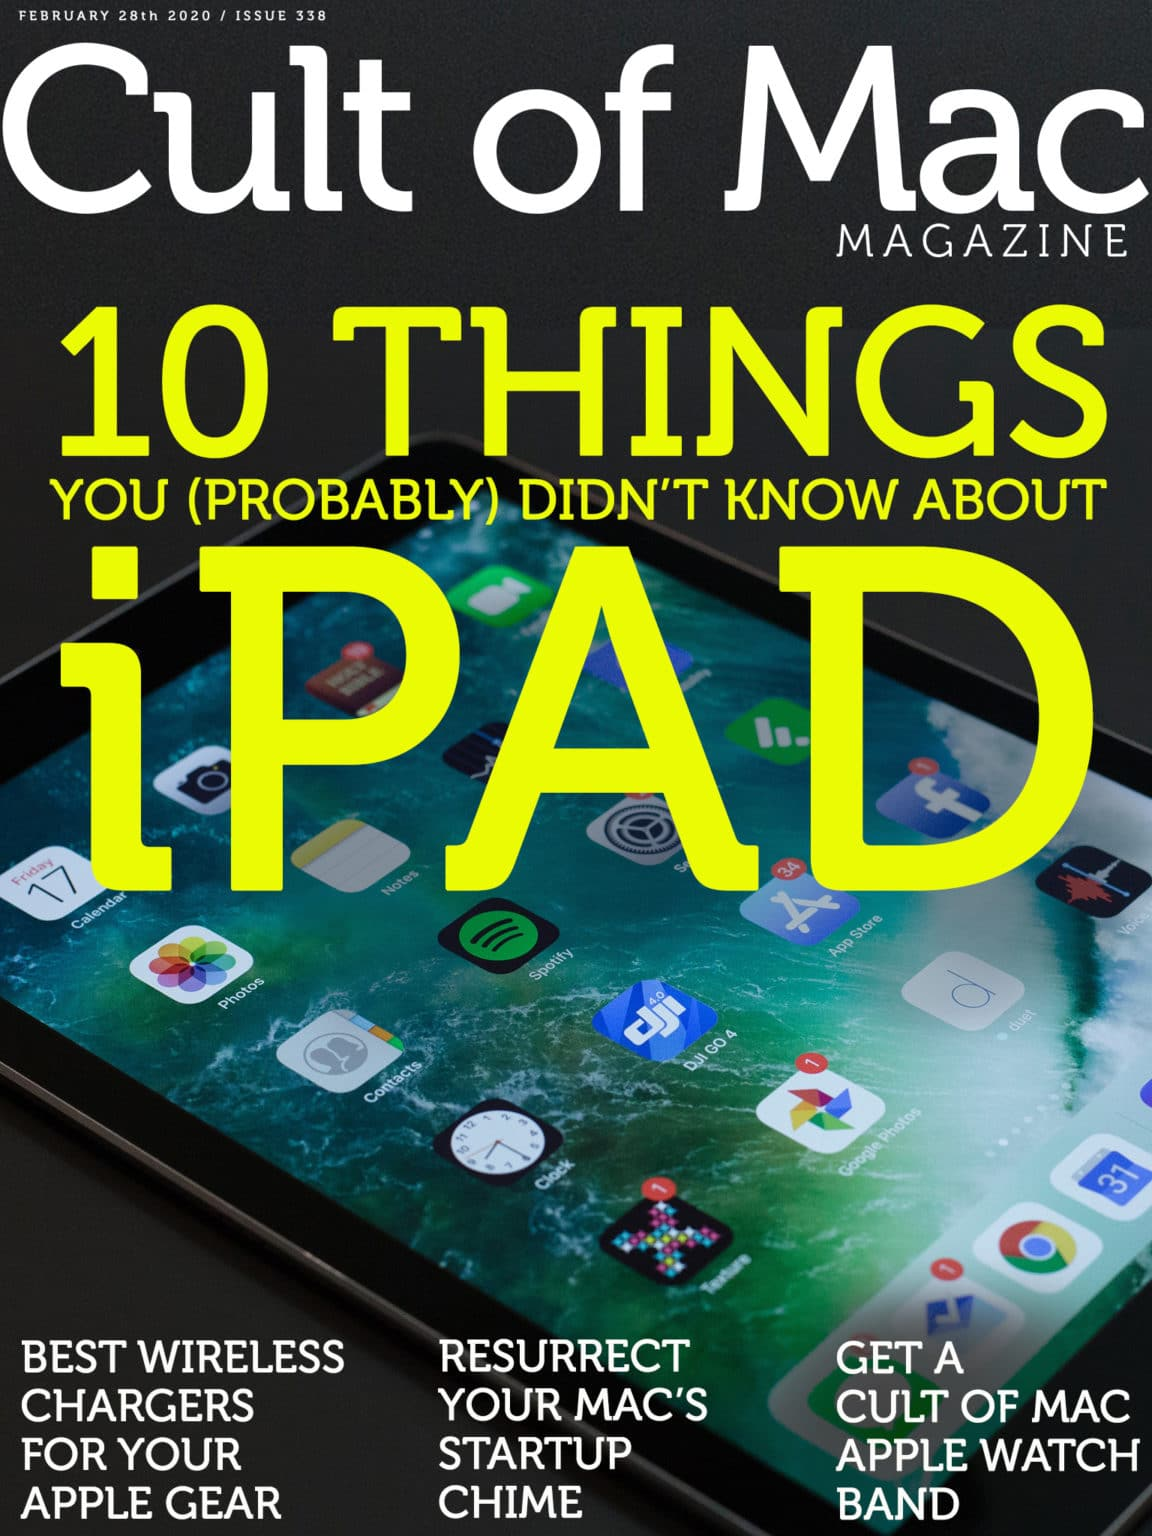 iPad trivia: 10 things you didn't know.